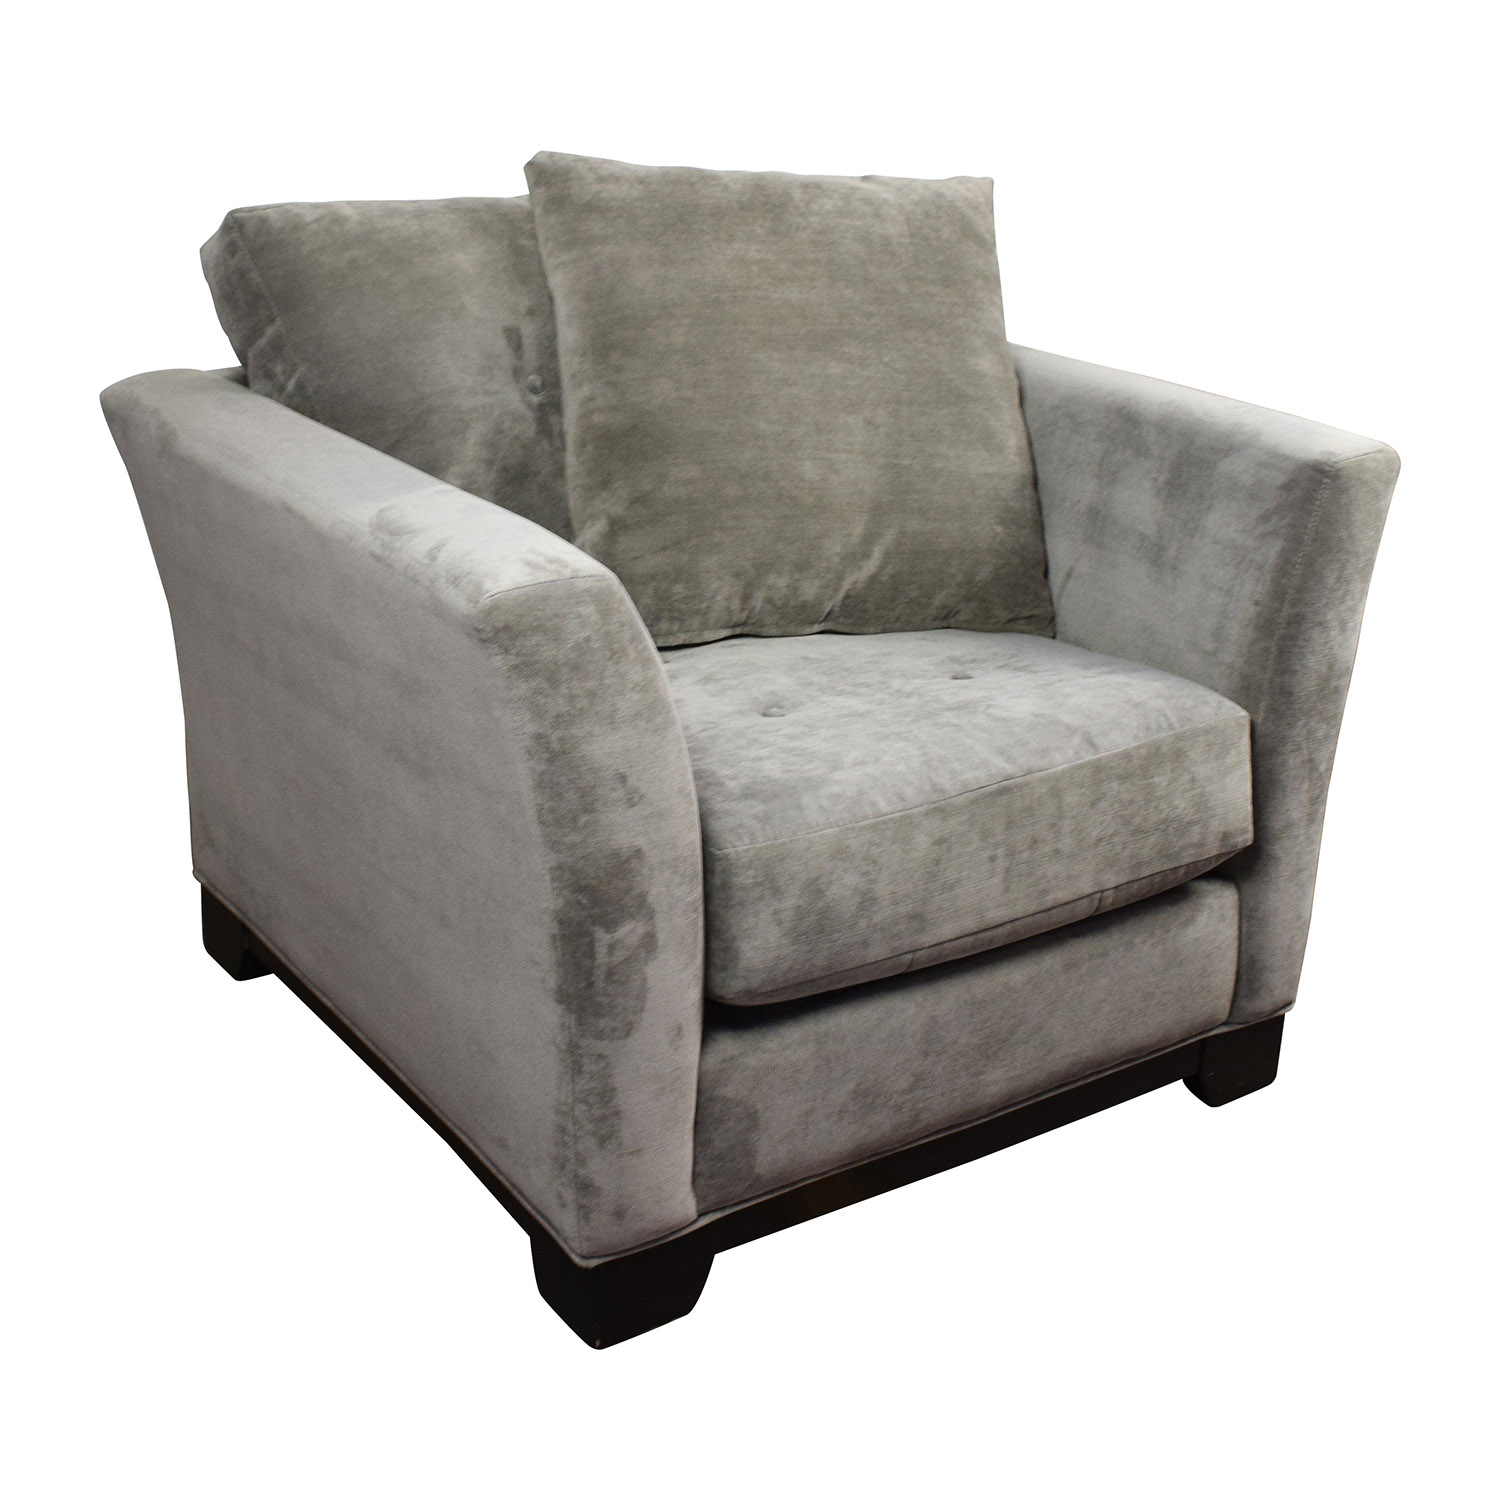 44 Off Macy S Macy S Kenton Grey Accent Chair Chairs